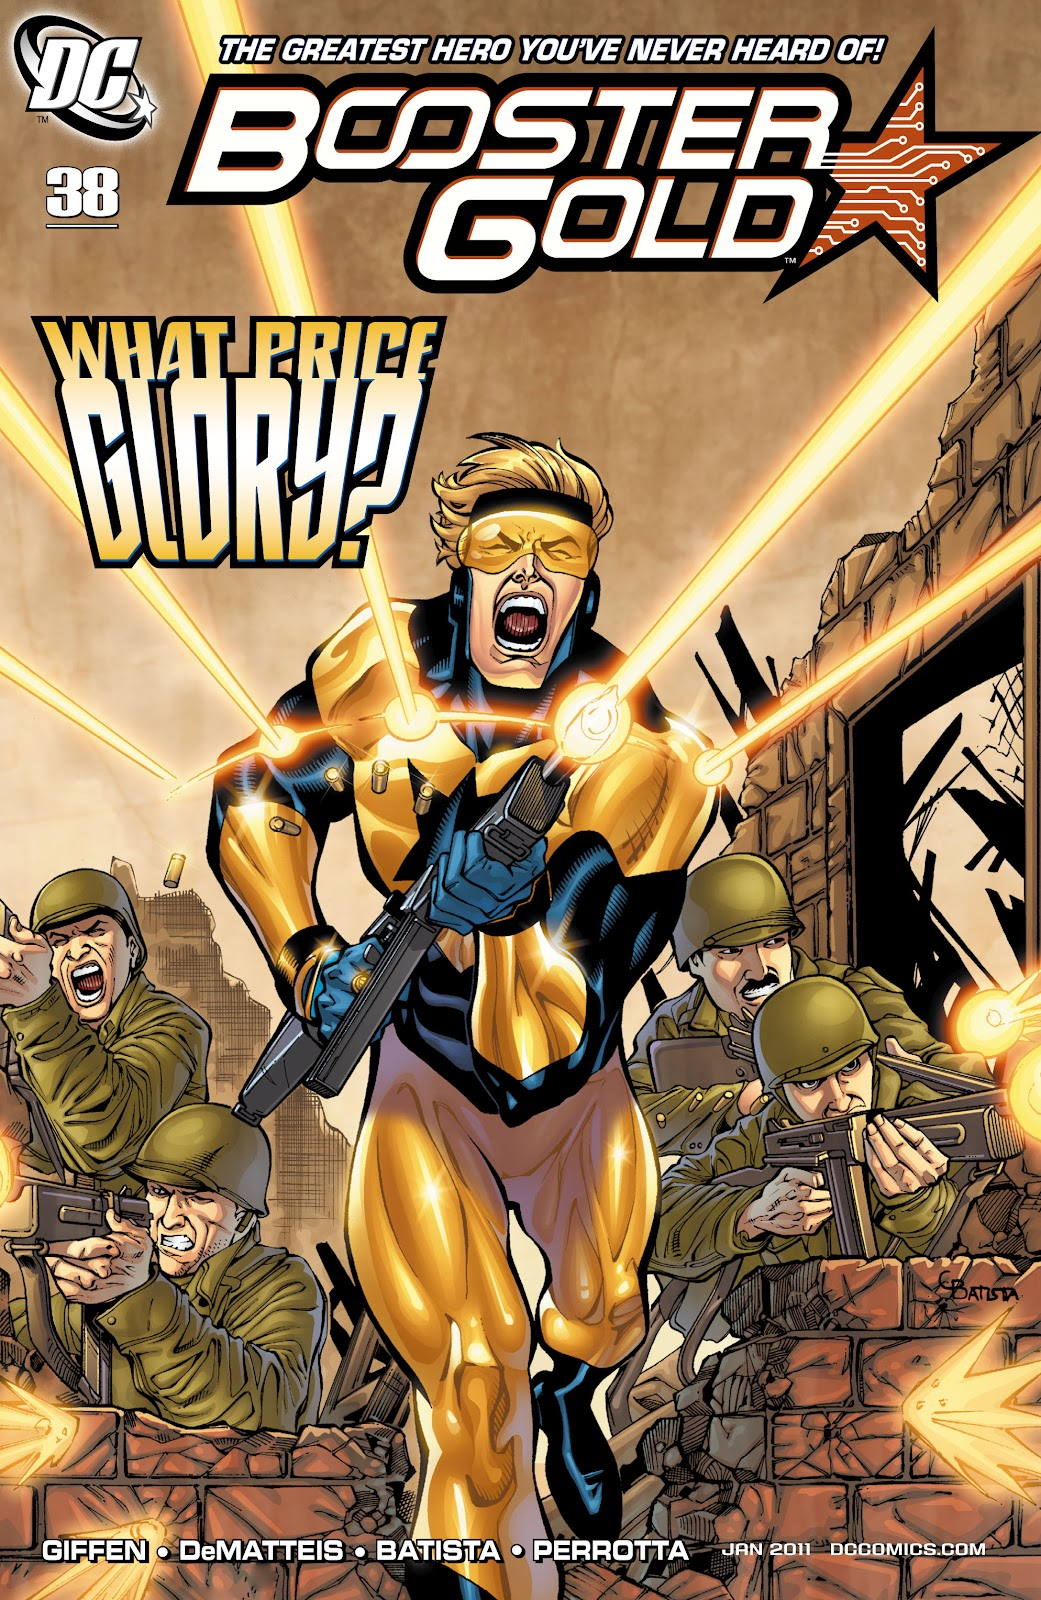 Booster Gold (2007) issue 38 - Page 1